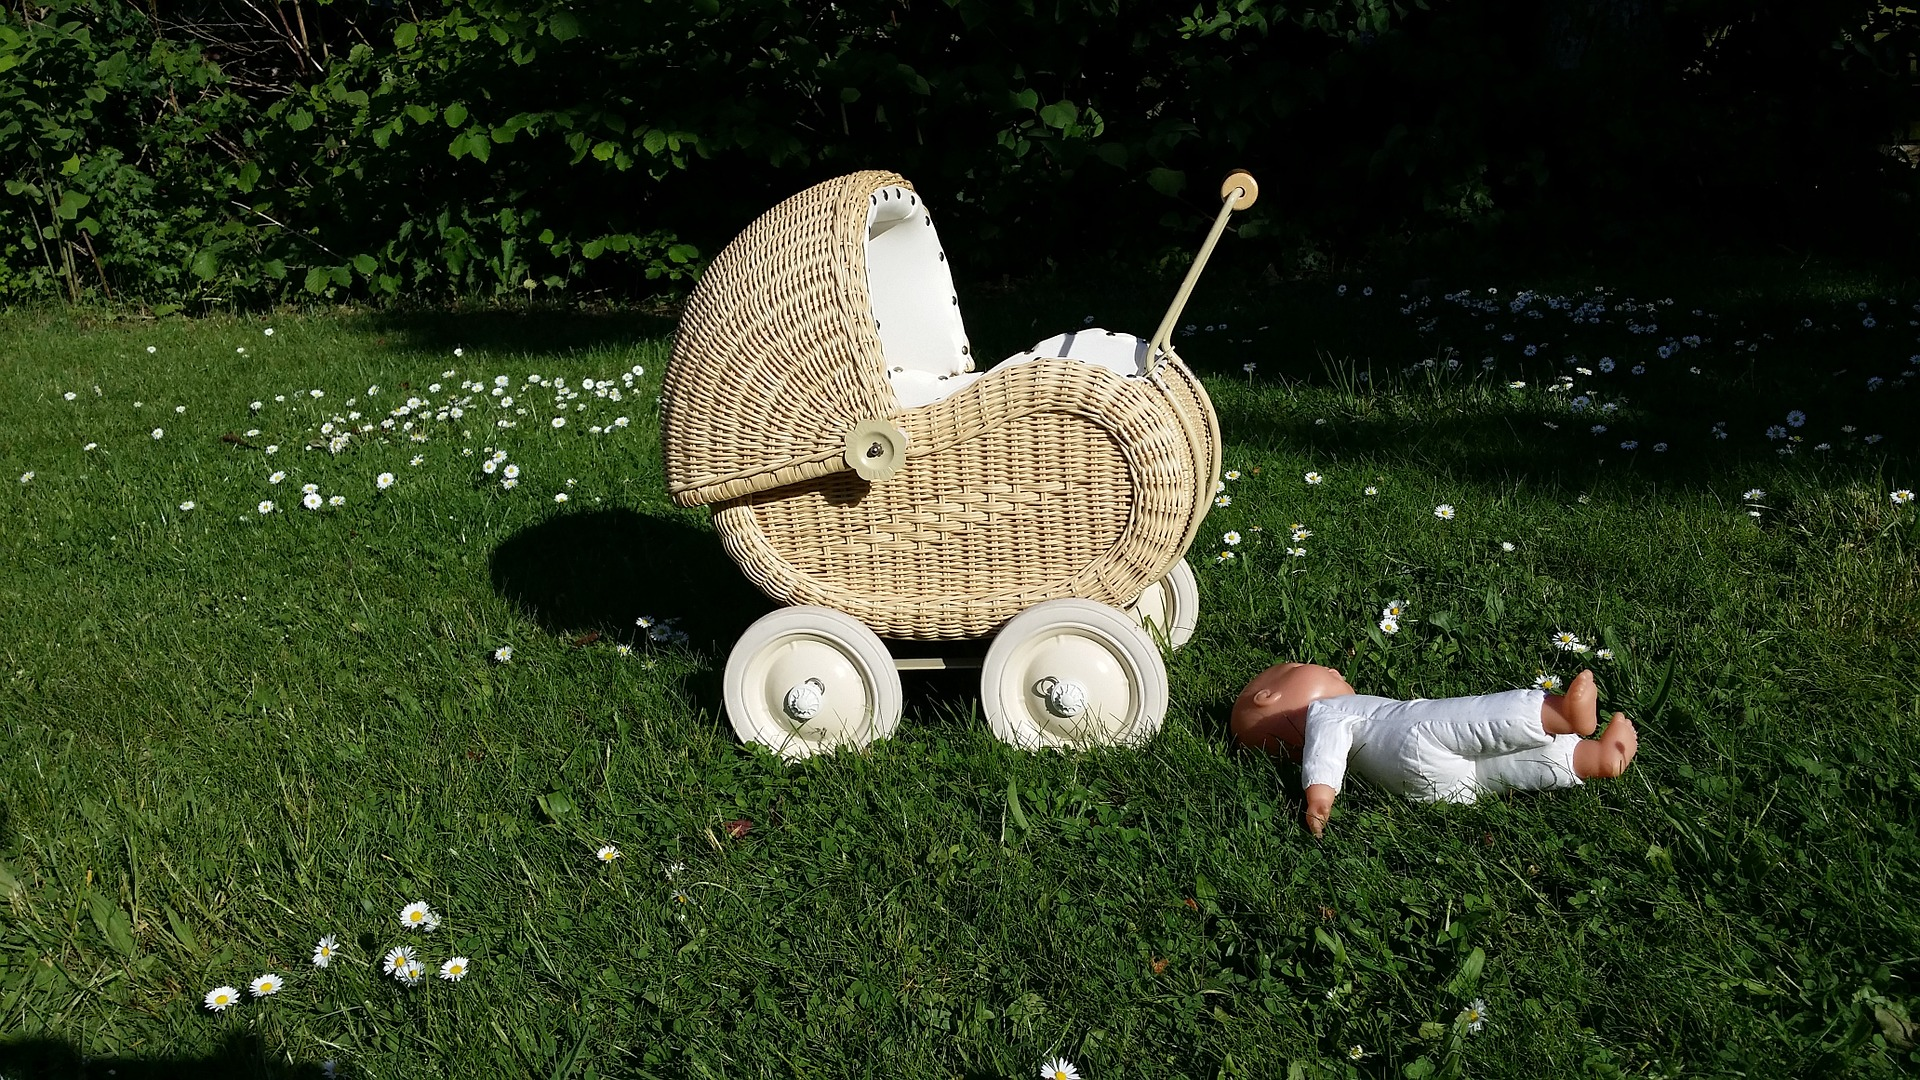 A wicker pram and baby doll lying in the grass